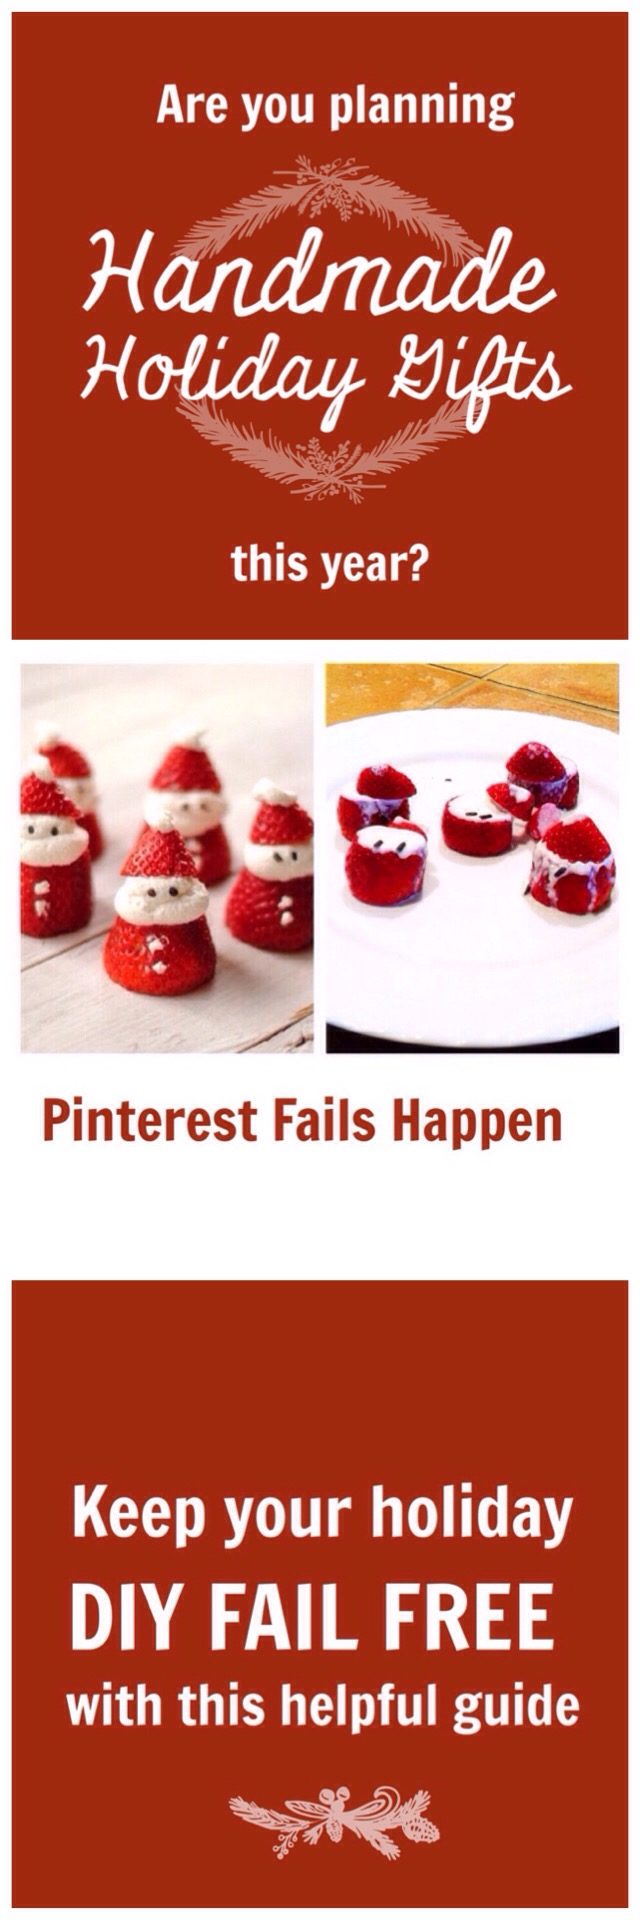 pinterest fails happen: avoid handmade holiday gift fails with these helpful tips